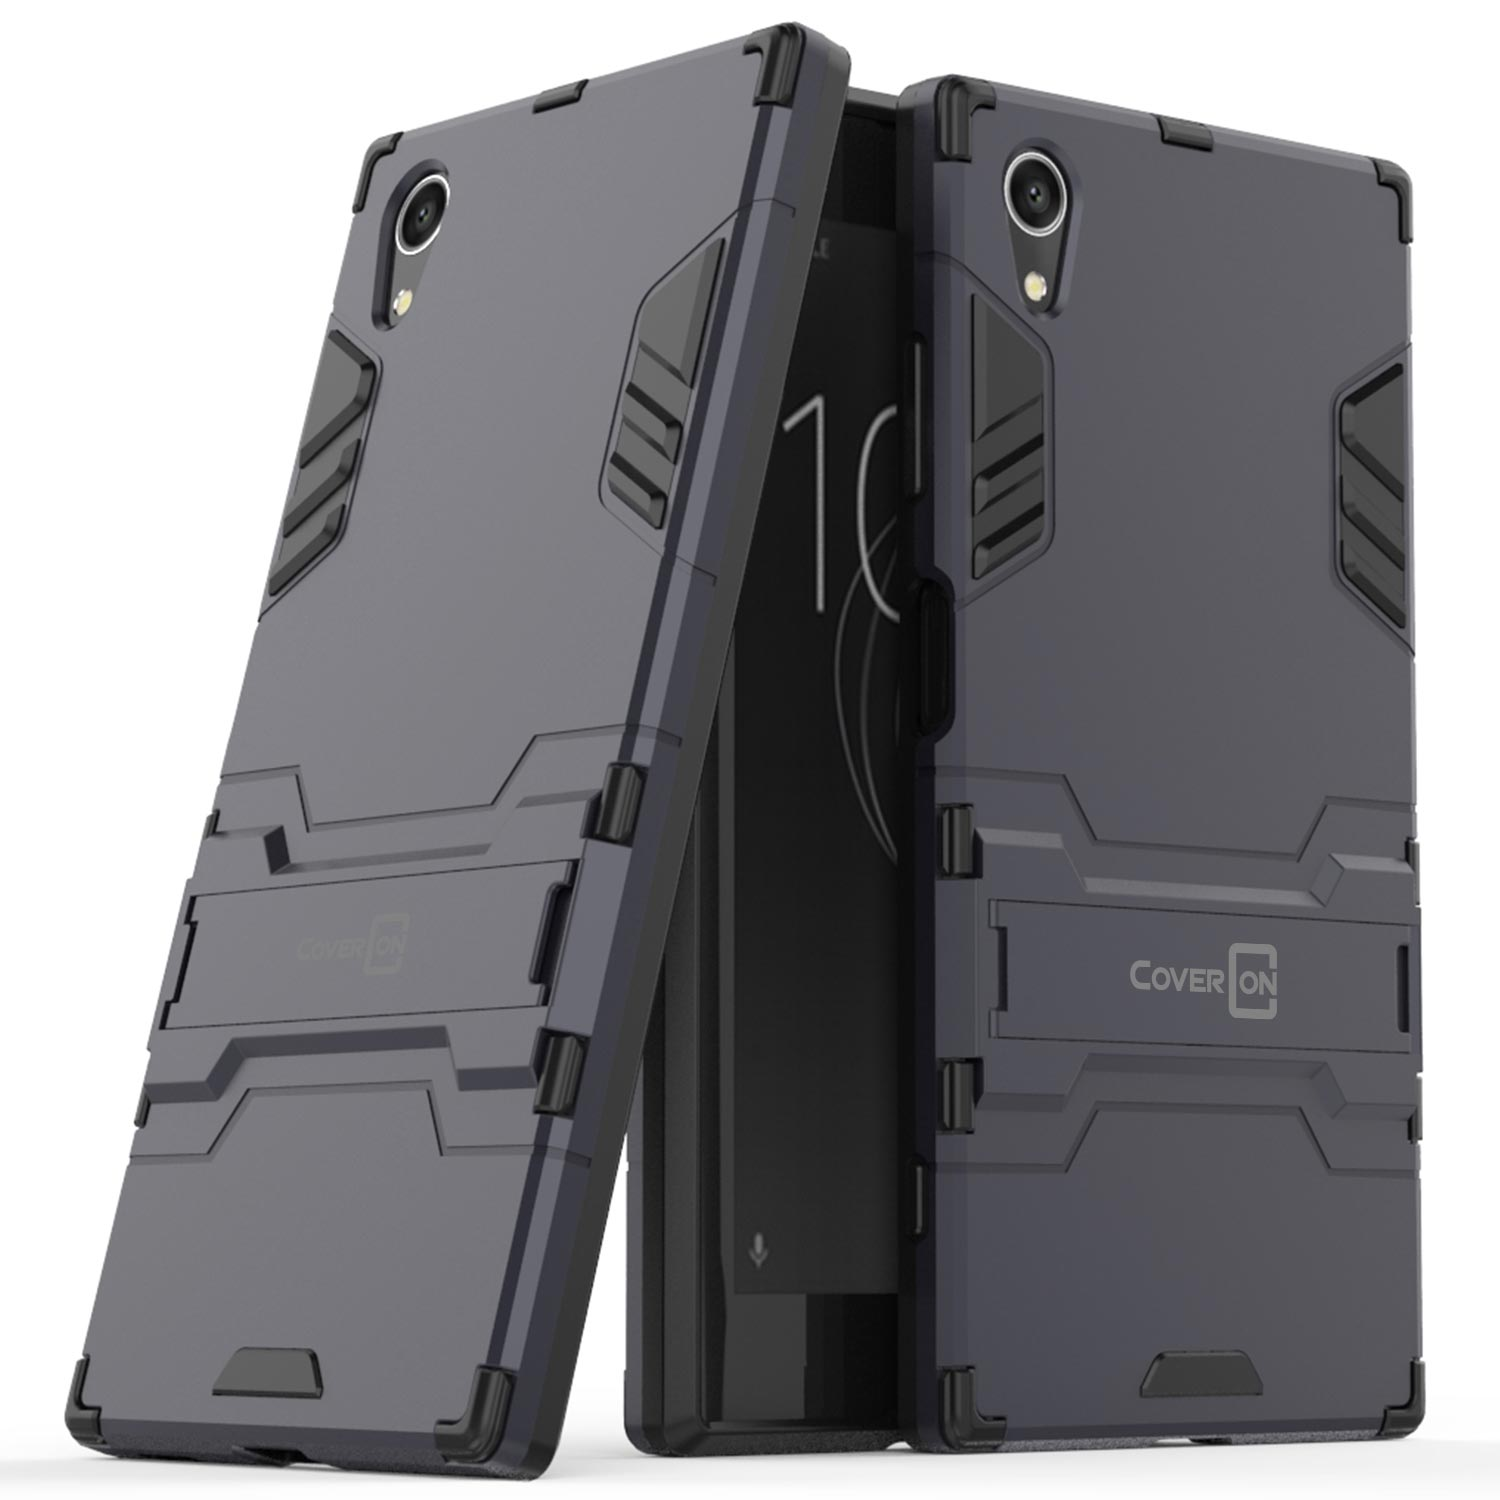 release date bce6d 1b025 Details about For Sony Xperia XA1 Plus Hard Case Navy / Black Kickstand  Protective Phone Cover